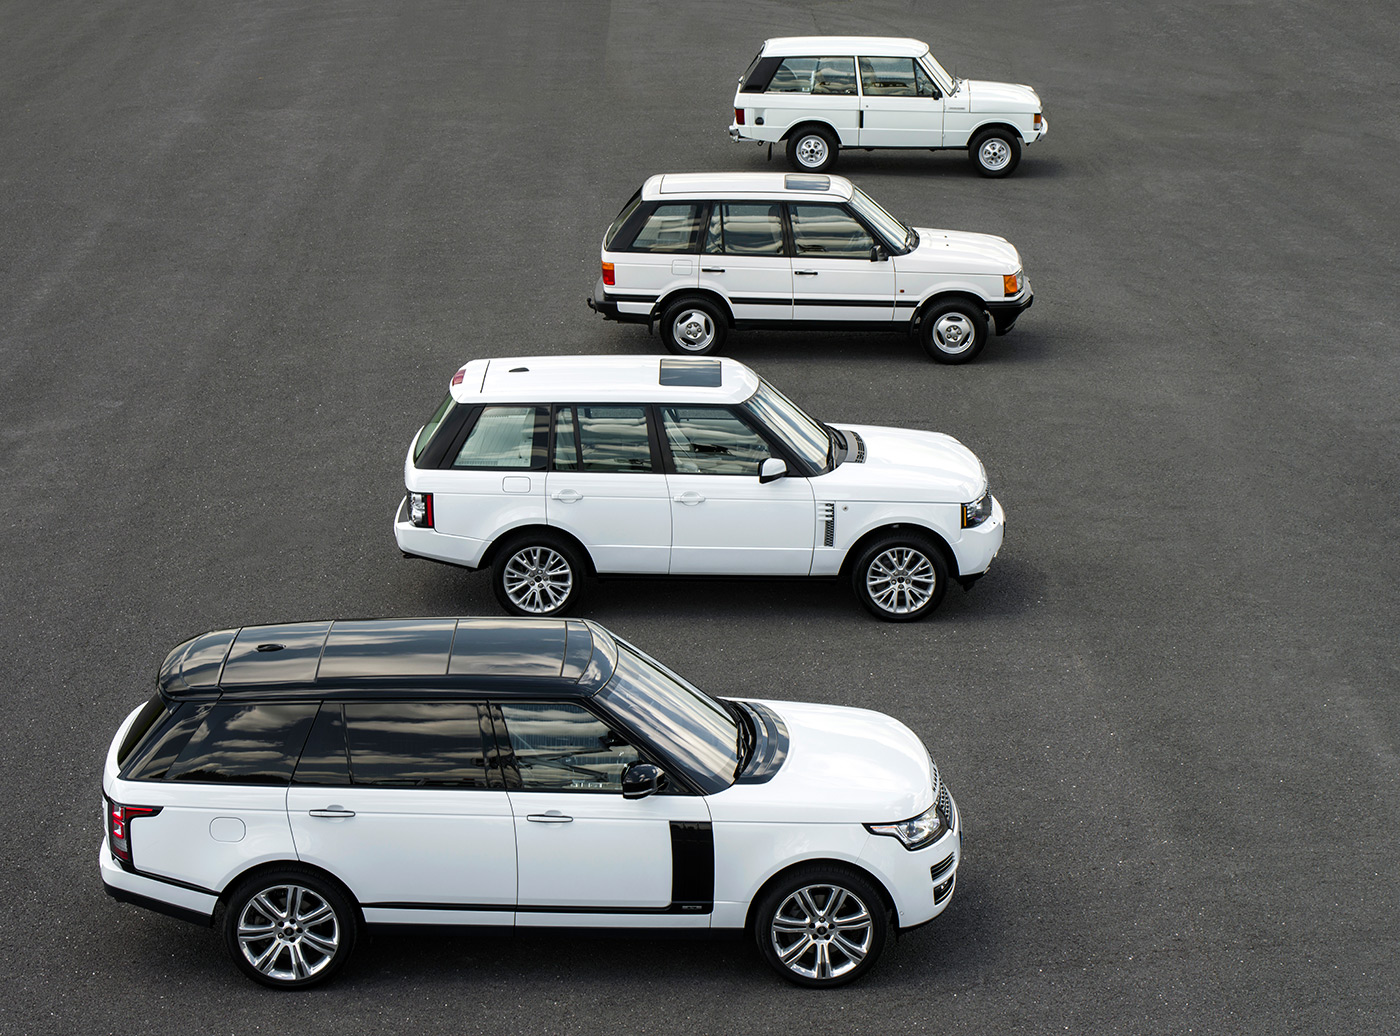 <p>Range Rovers old and new to commemorate 45 years of production. The Classic model at the top is owned by me.</p>